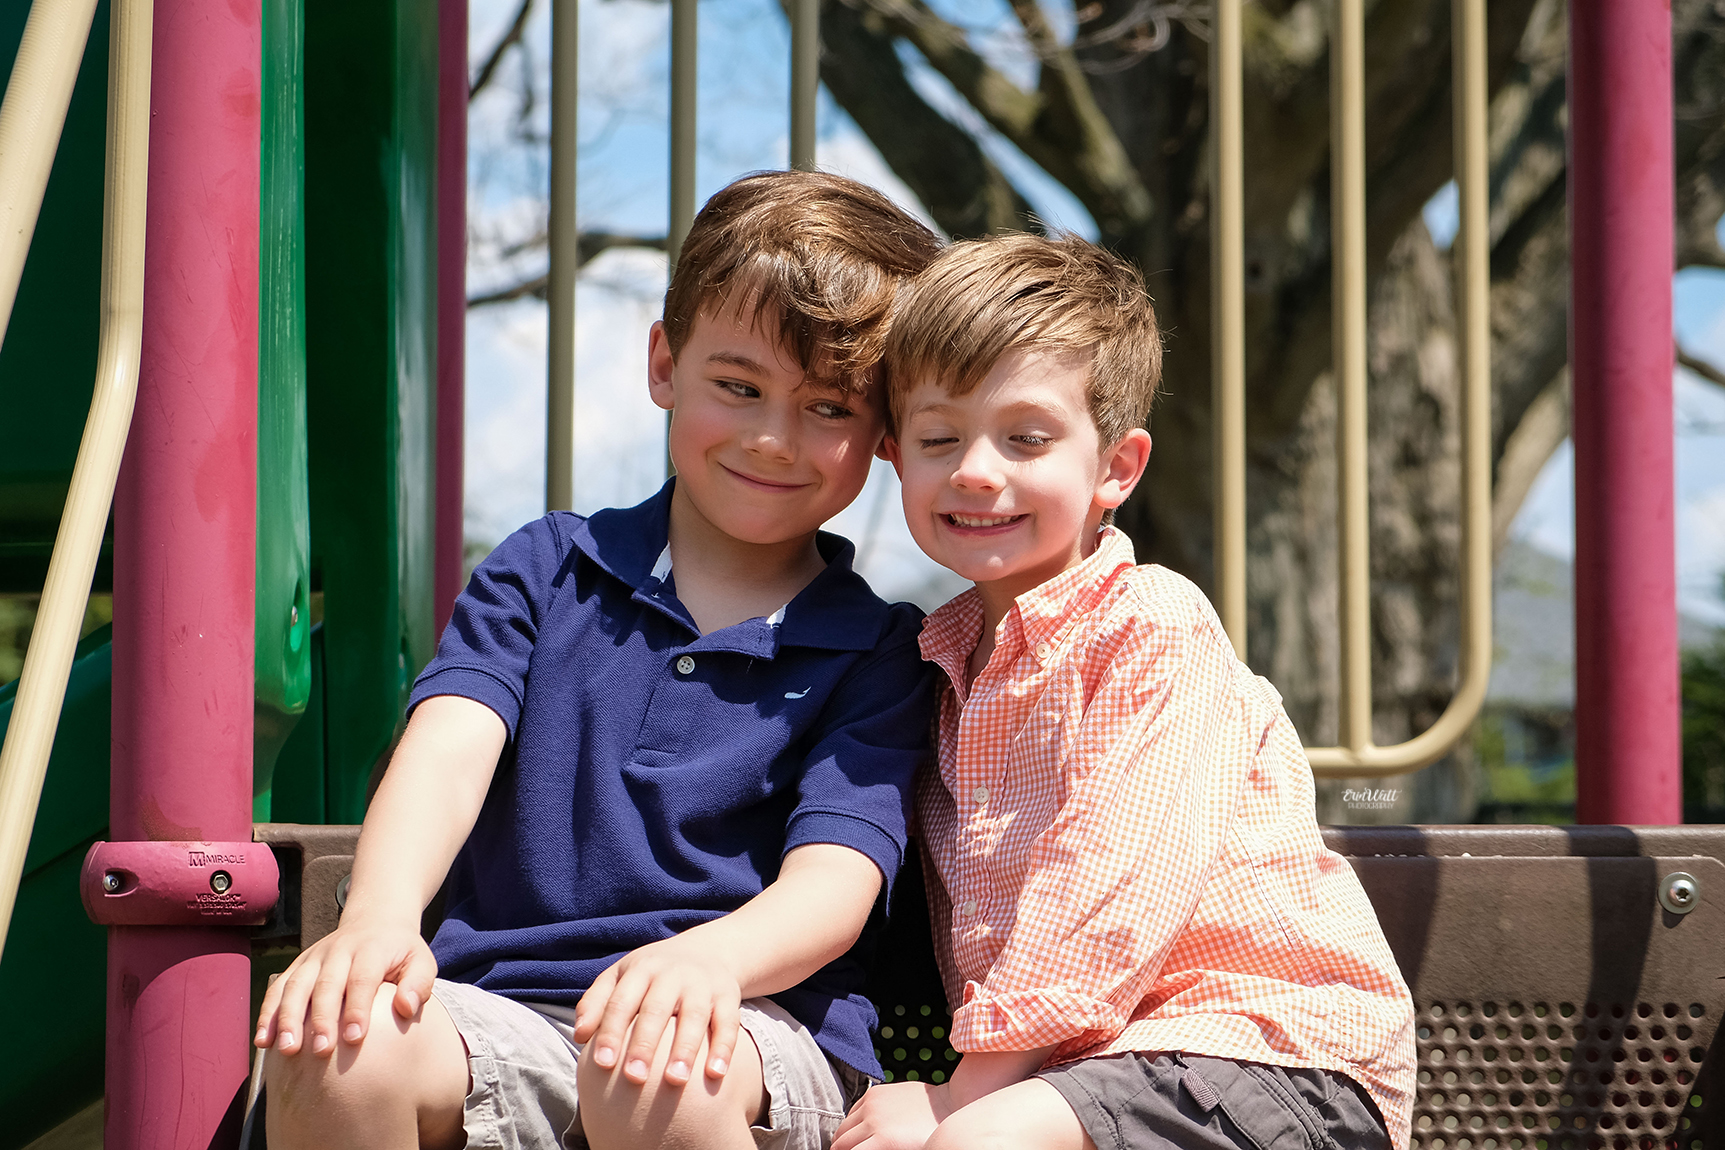 Two young brothers smiling at each other on a playground outside on a sunny day Family photography Kitchener-Waterloo